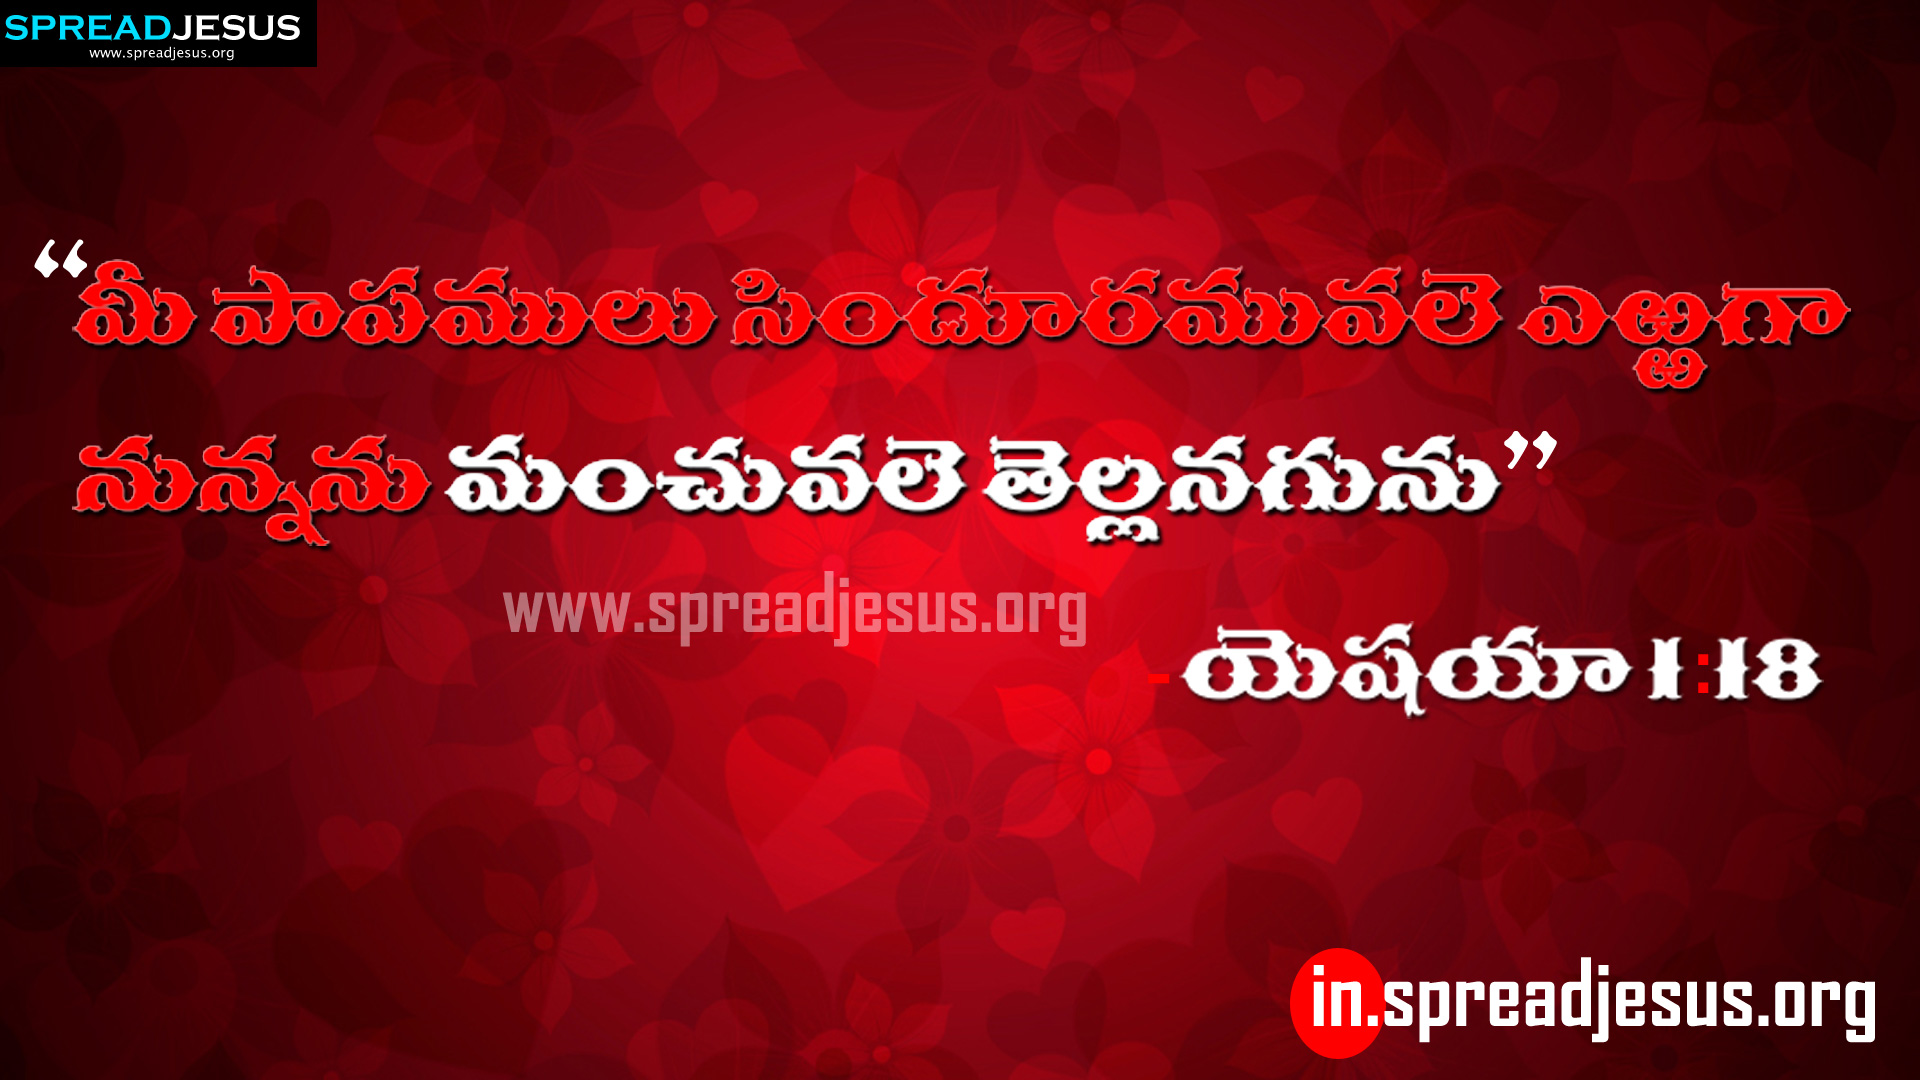 TELUGU BIBLE QUOTES HD-WALLPAPER ISAIAH-1:18